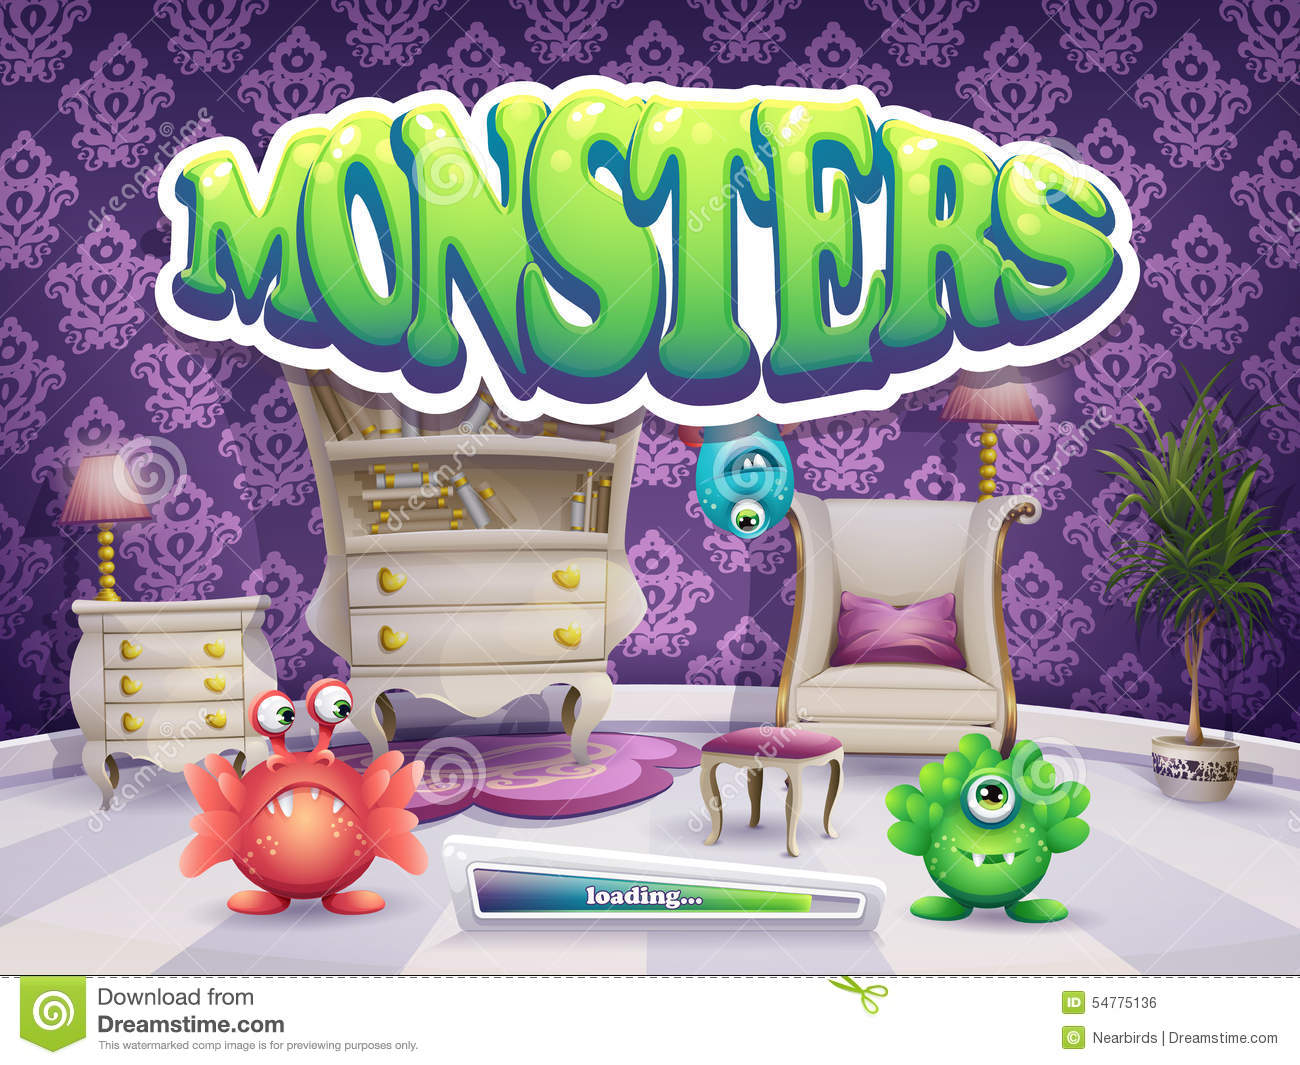 Example of loading screen for the game Monsters